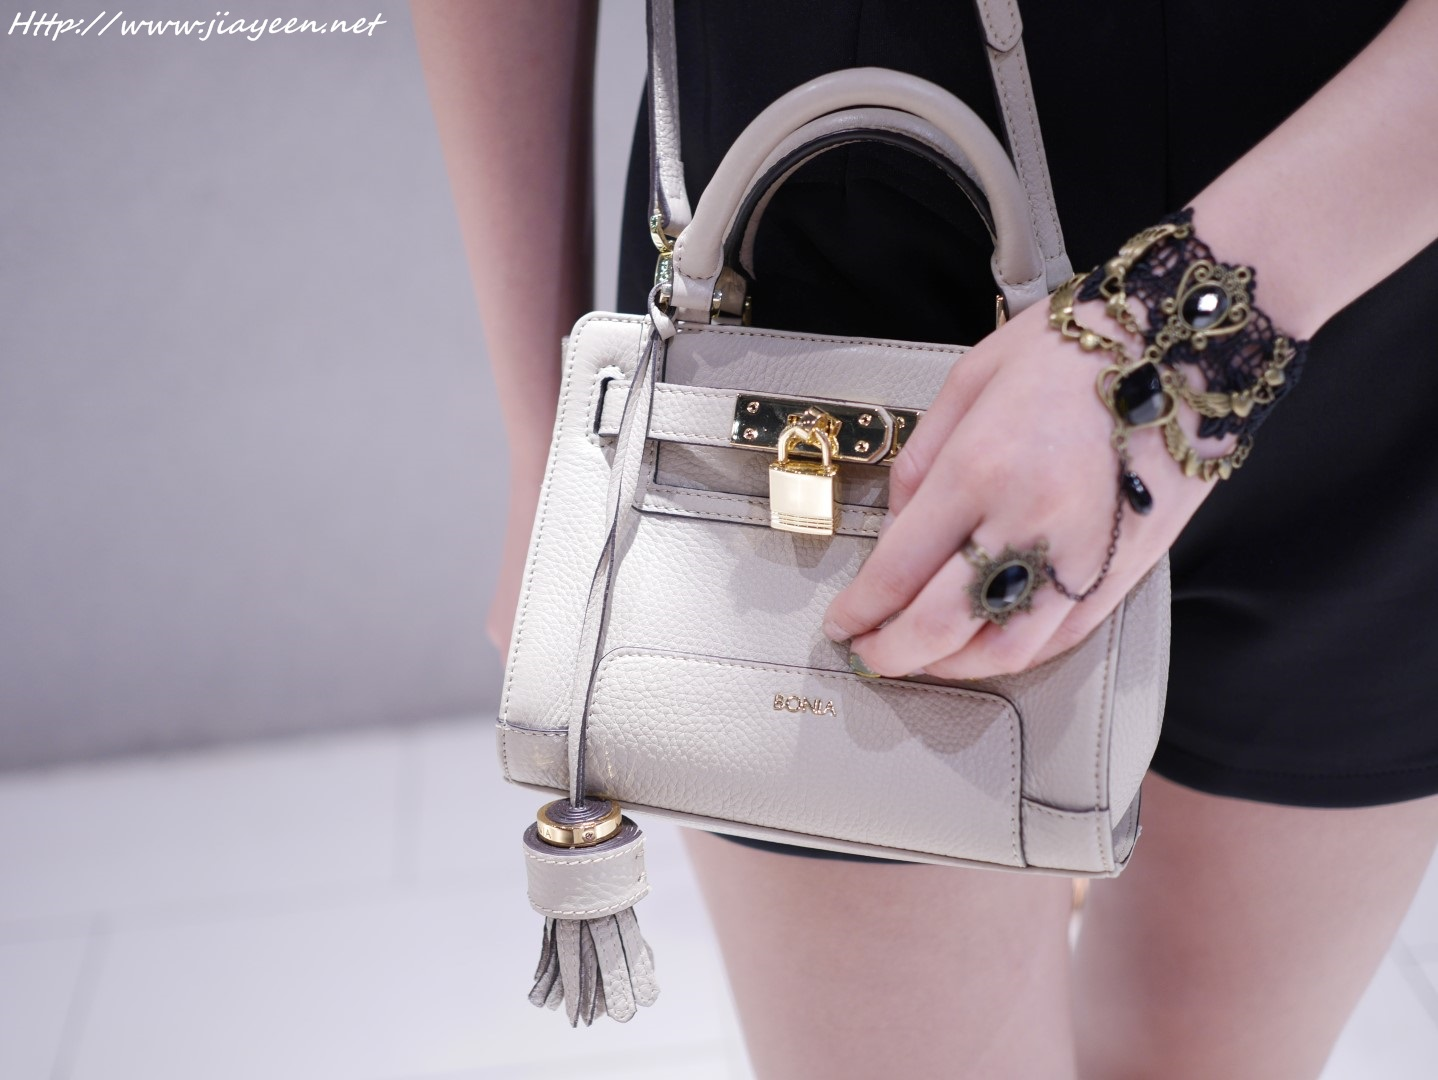 Beige Colour And The Lock Design Will Never Go Out Of Style